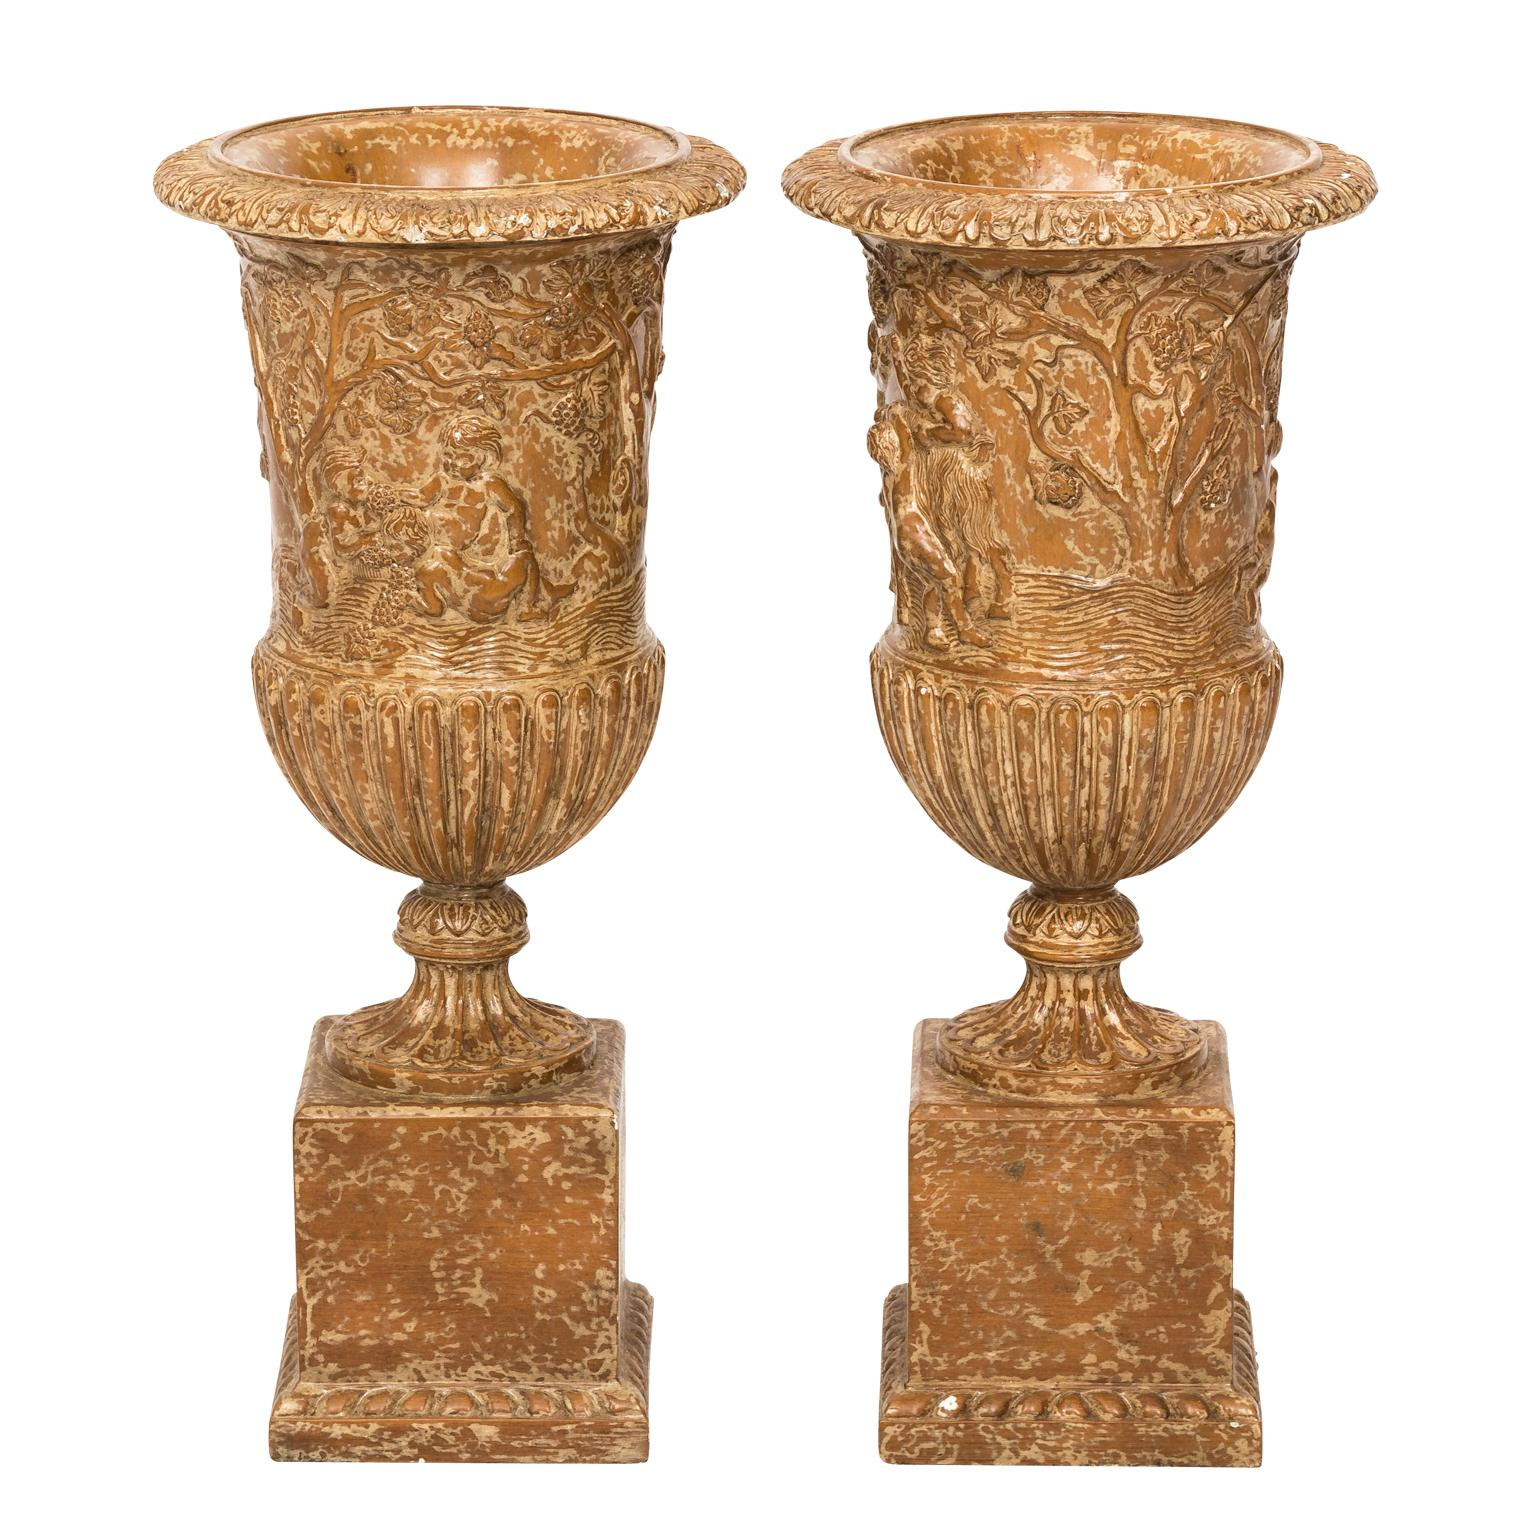 Pair of Carved Painted Wooden Urns